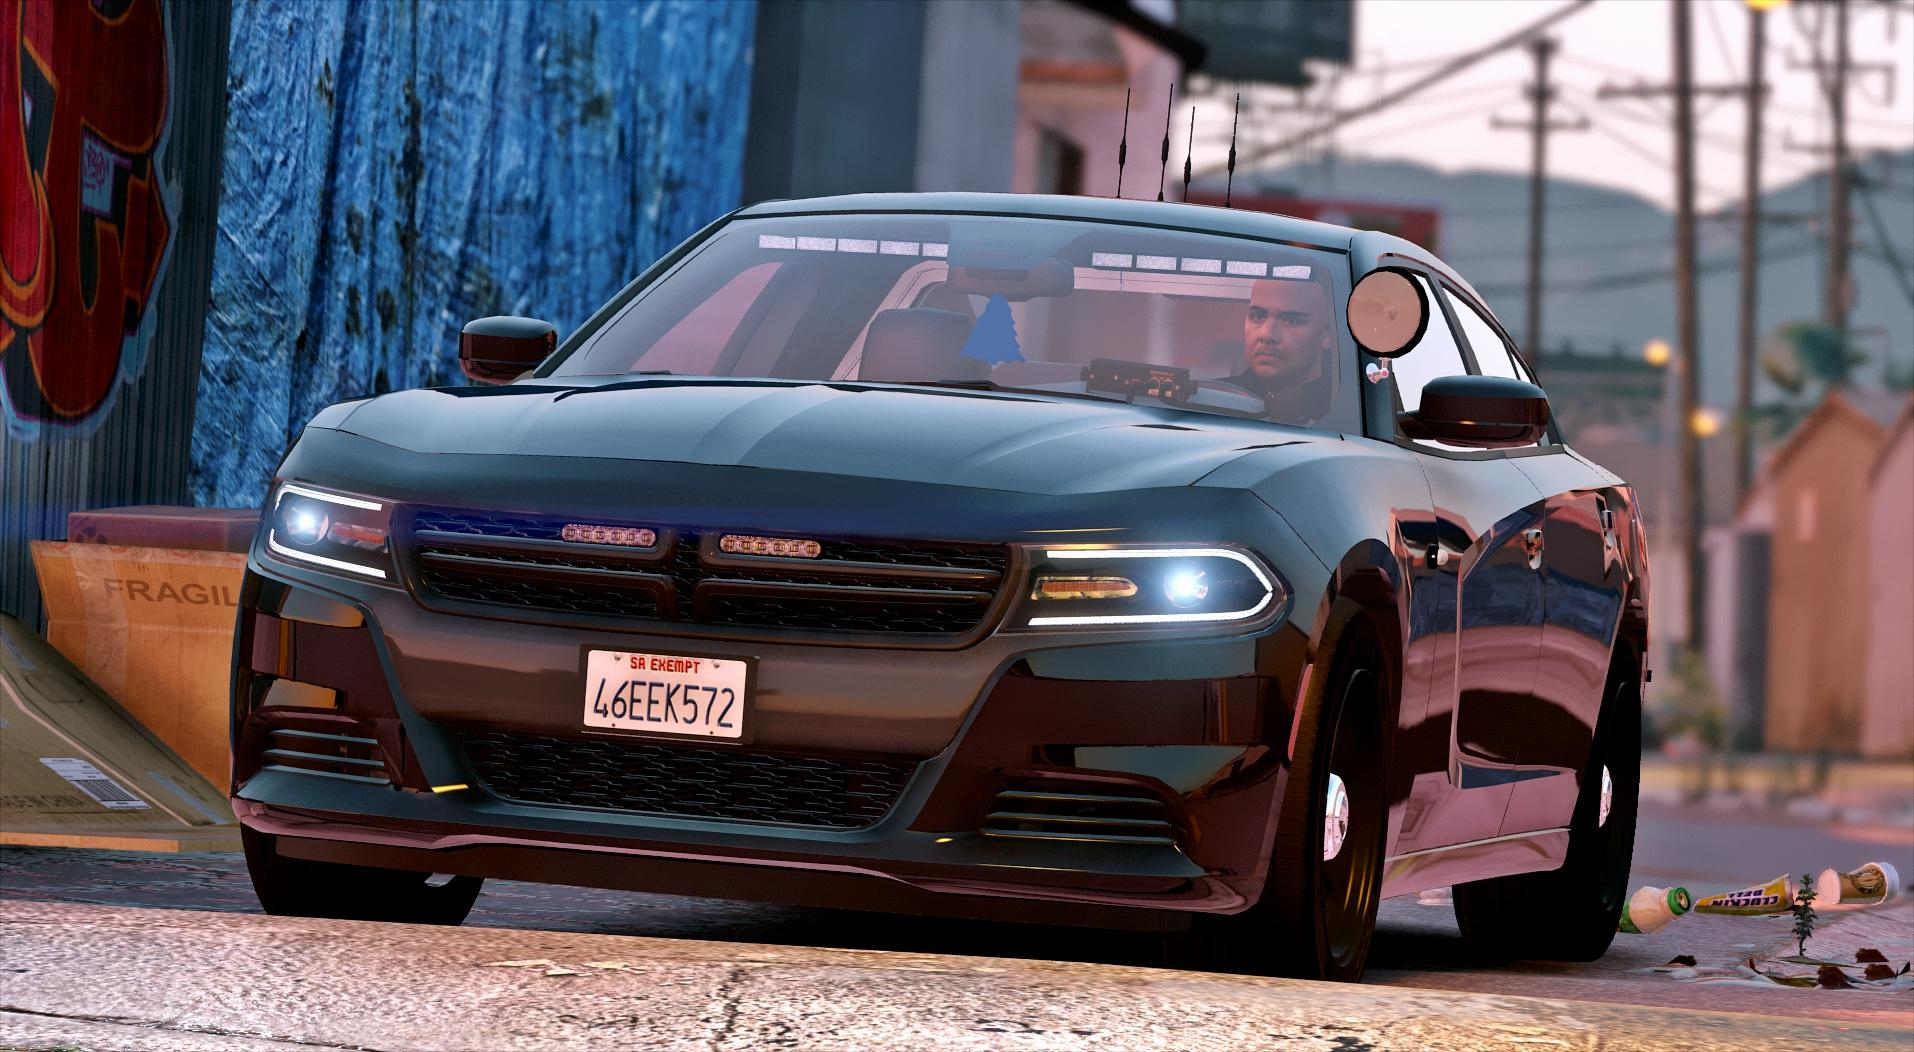 2016 Unmarked Dodge Charger Els Gta5 Mods Com